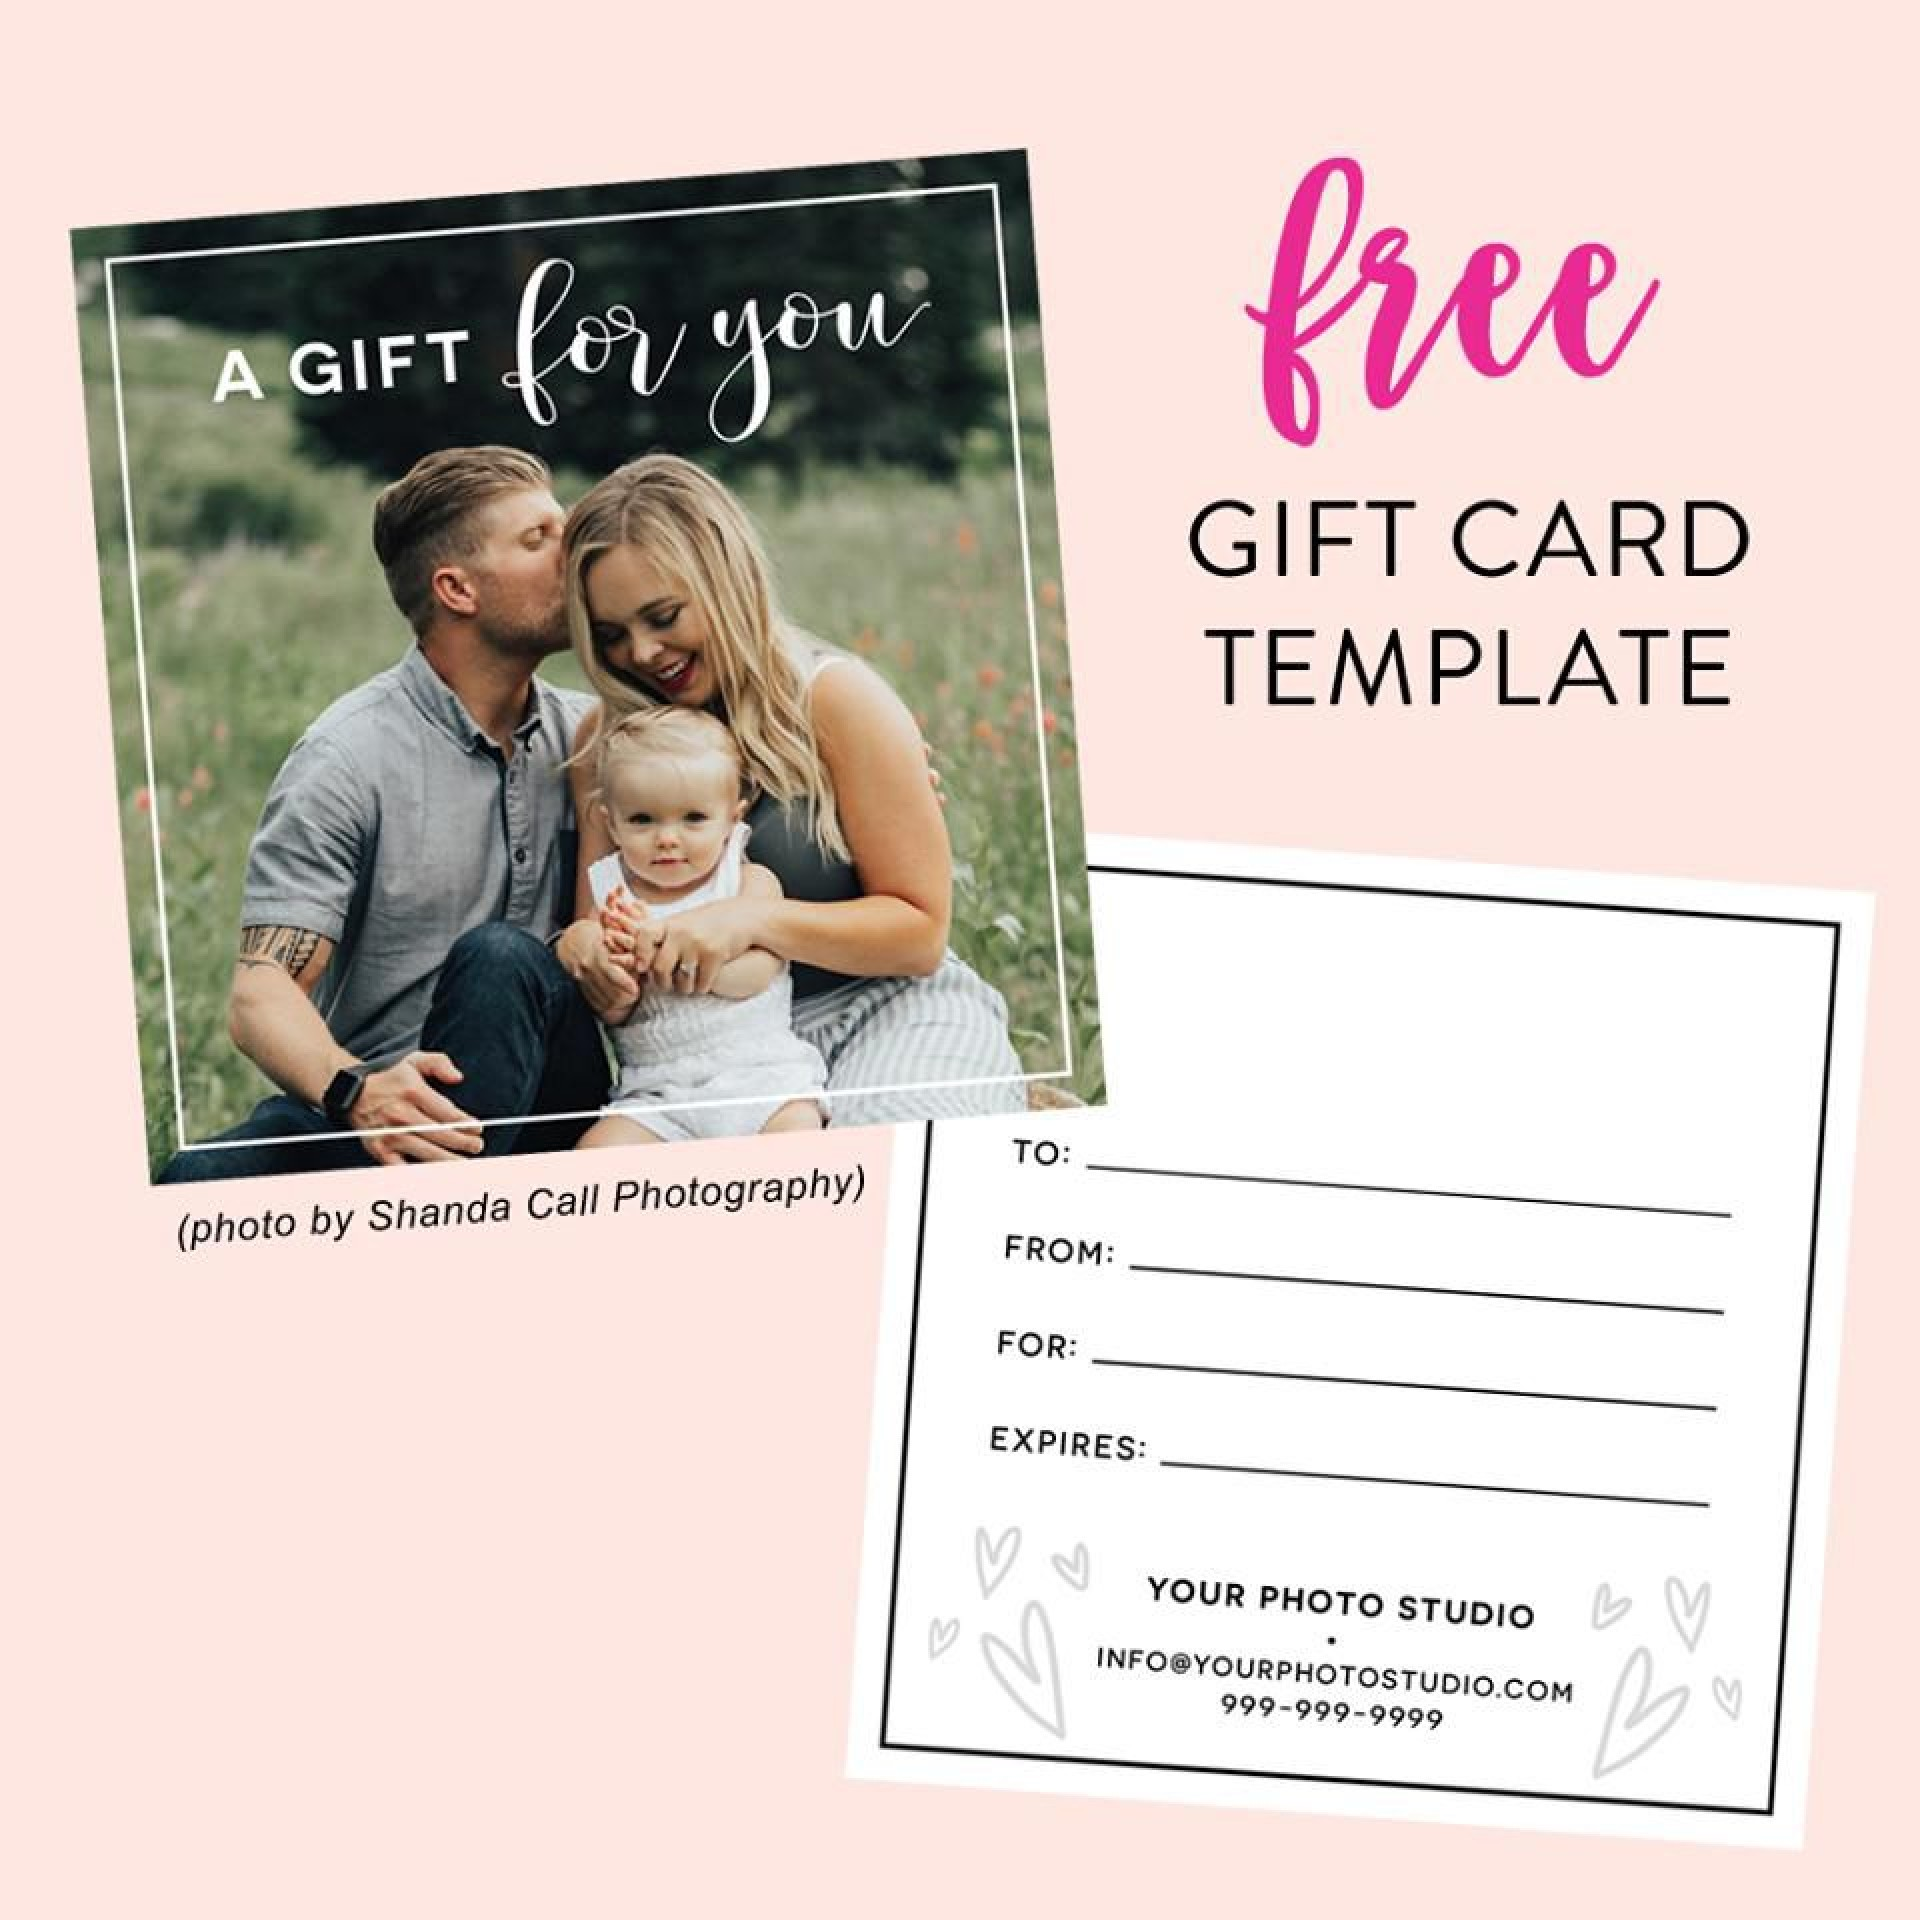 007 Unforgettable Photography Session Gift Certificate Template High Definition  Photo Free1920